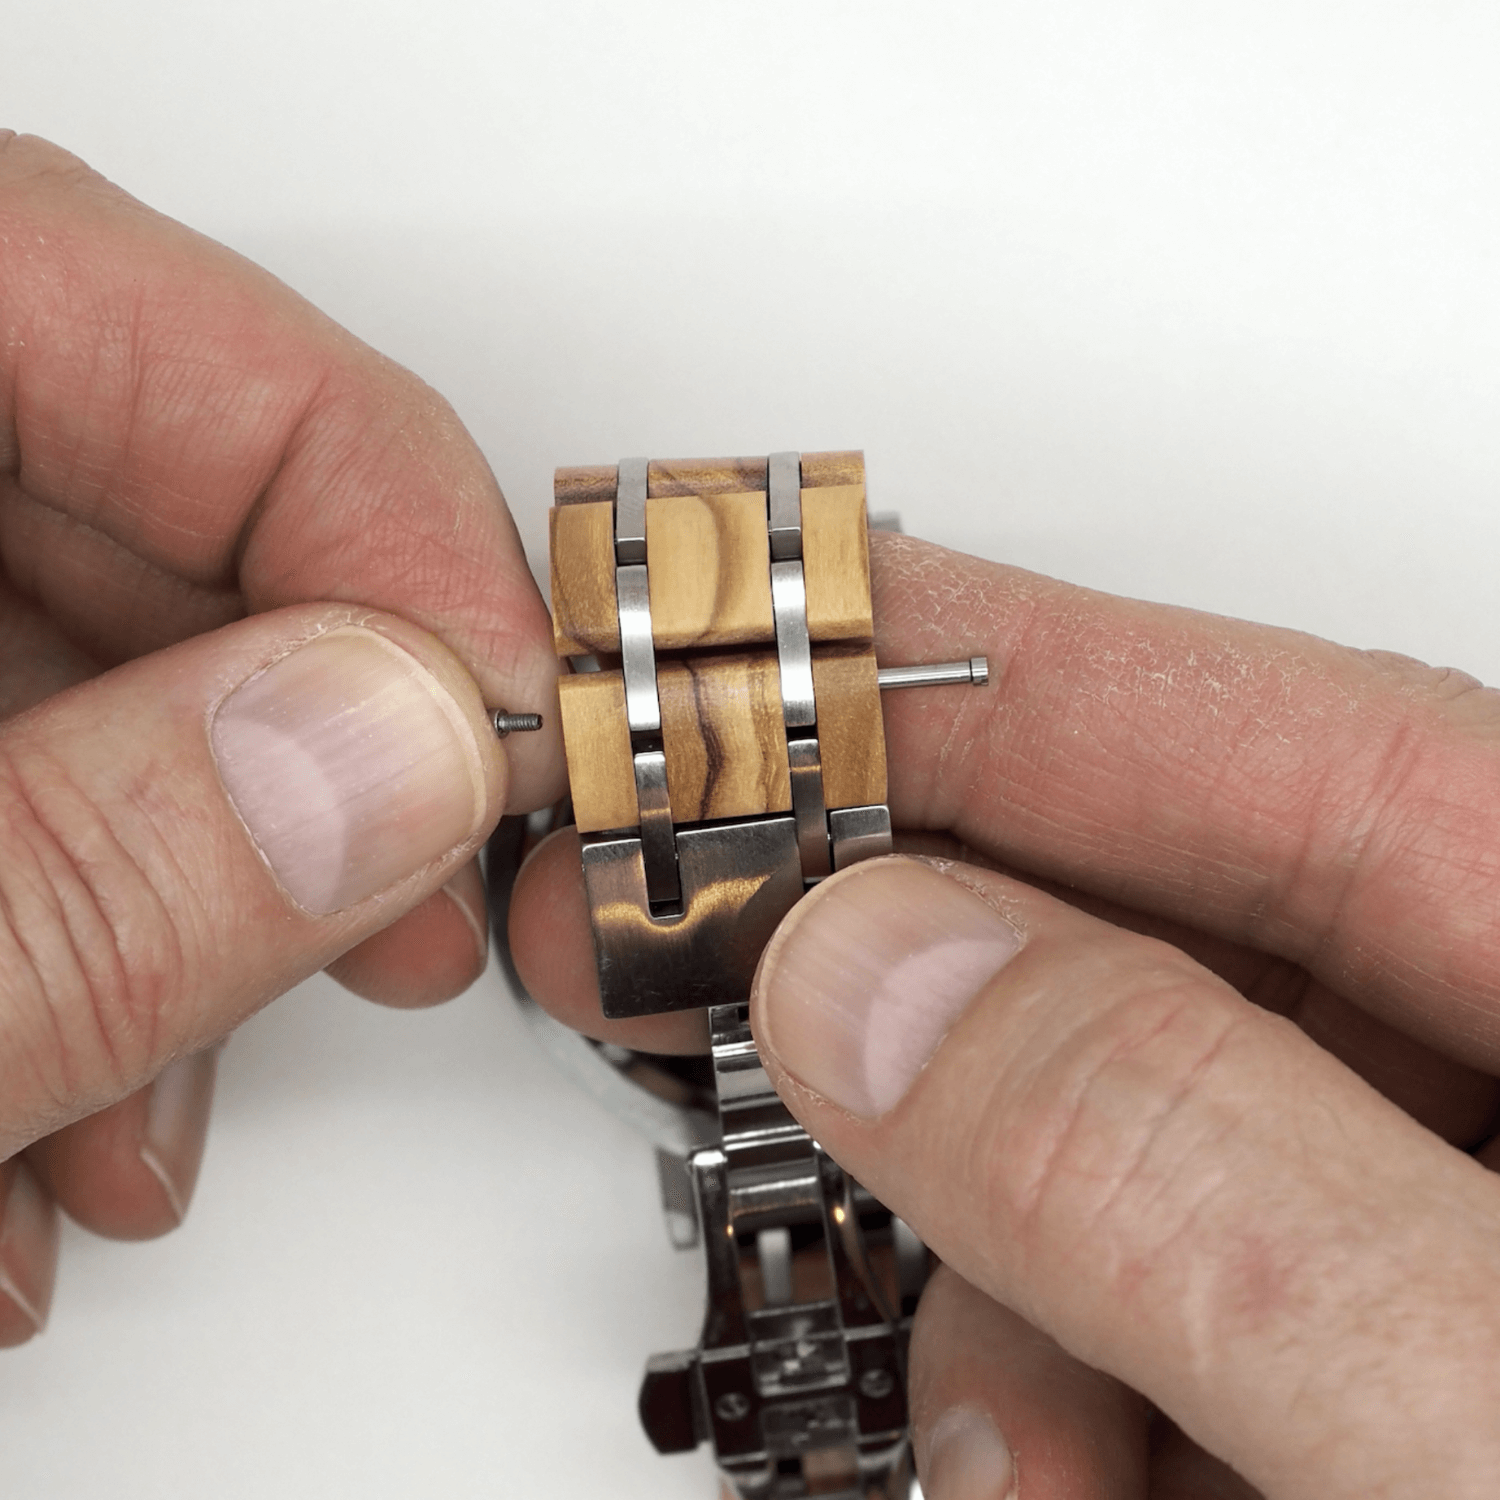 Person holding wooden watch band with screw and pin